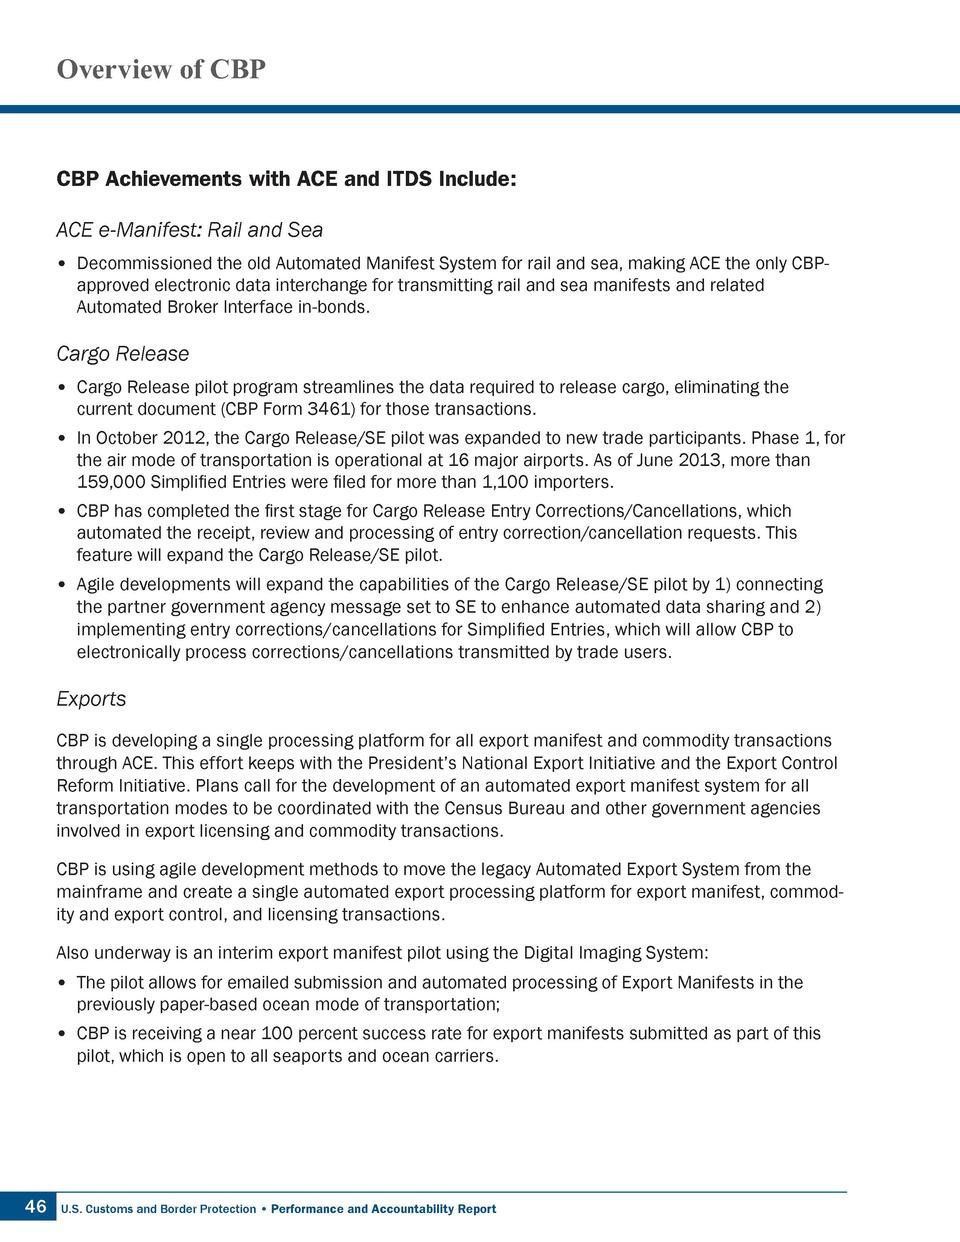 Overview of CBP  CBP Achievements with ACE and ITDS Include  ACE e-Manifest  Rail and Sea        Decommissioned the old Au...